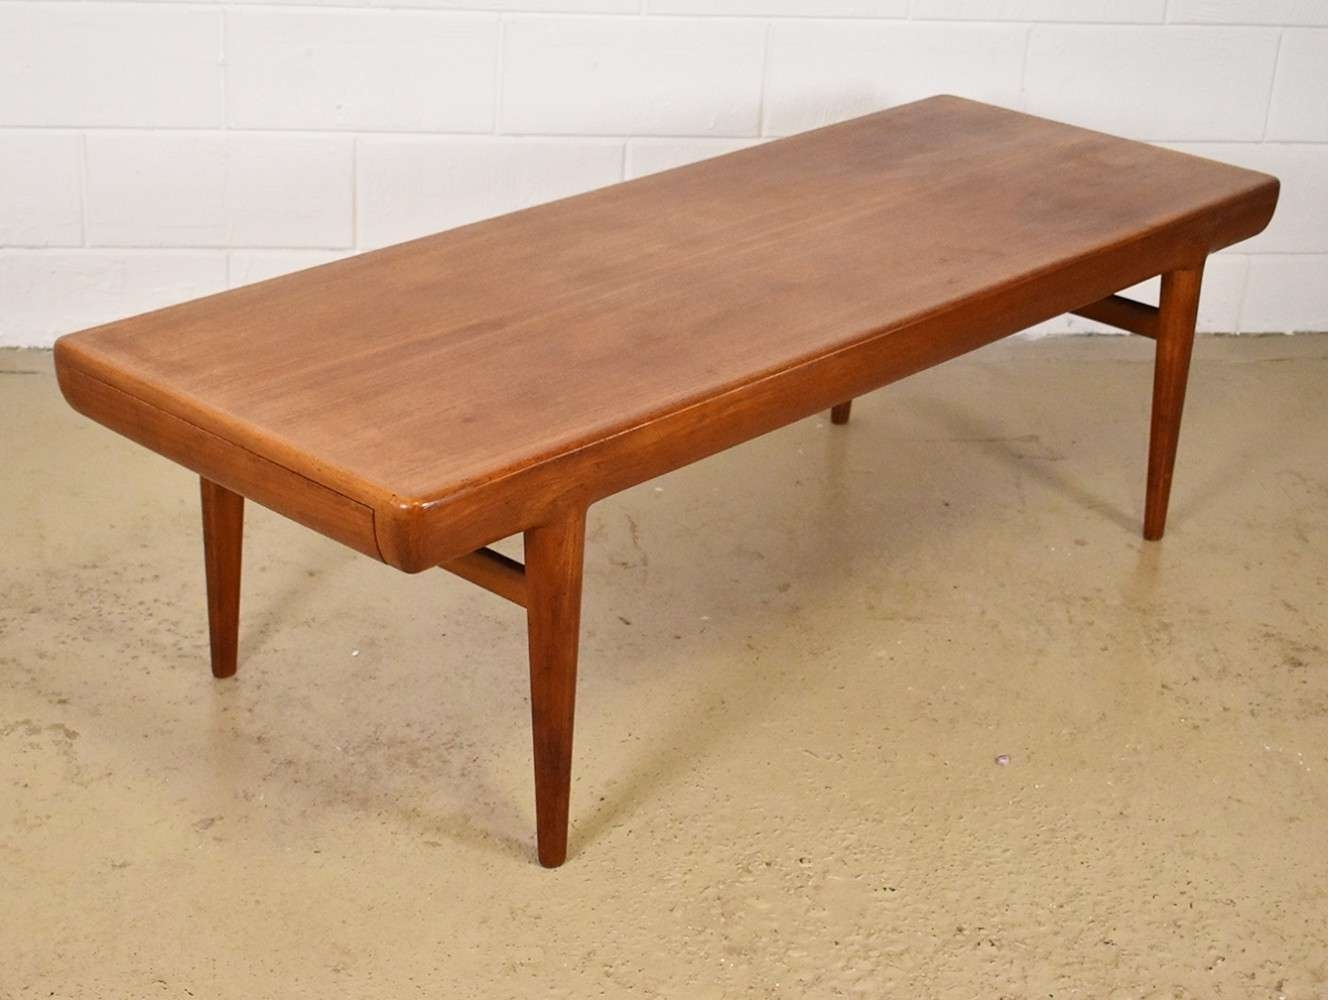 Trendy Long Coffee Tables Within Coffee Tables : Appealing Extra Long Coffee Table Very Large (View 7 of 20)